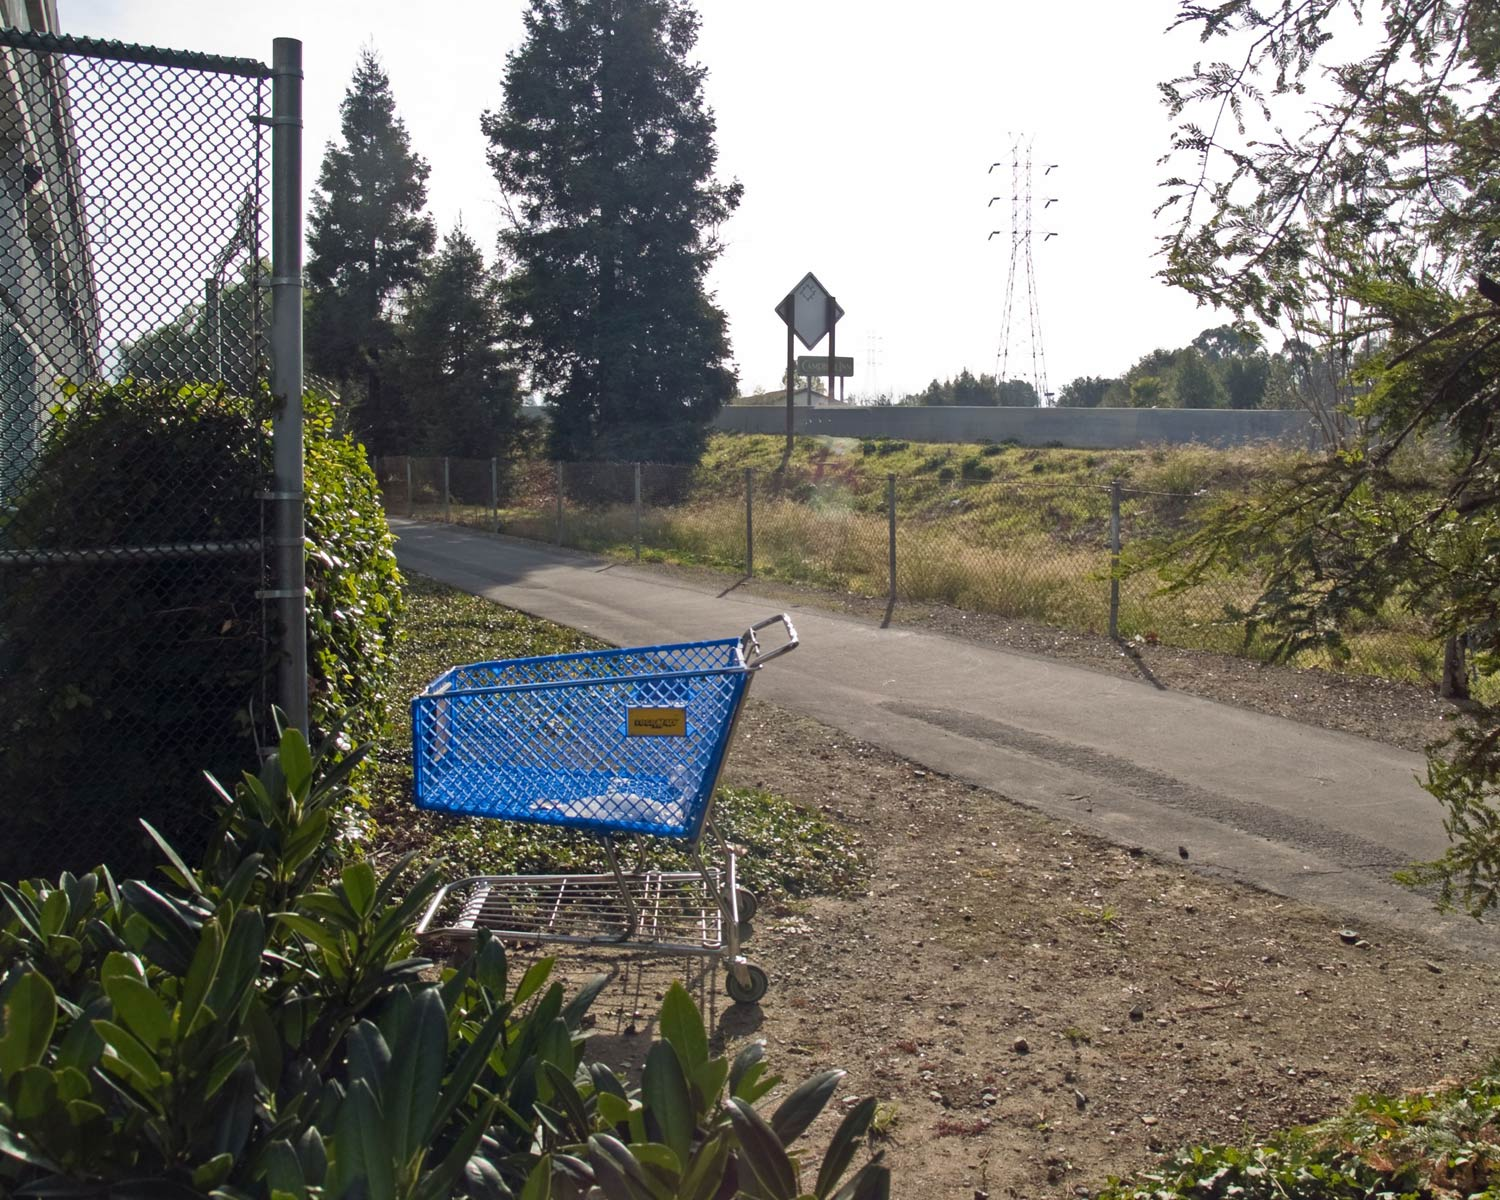 Shopping-cart-behind-fence_1293445